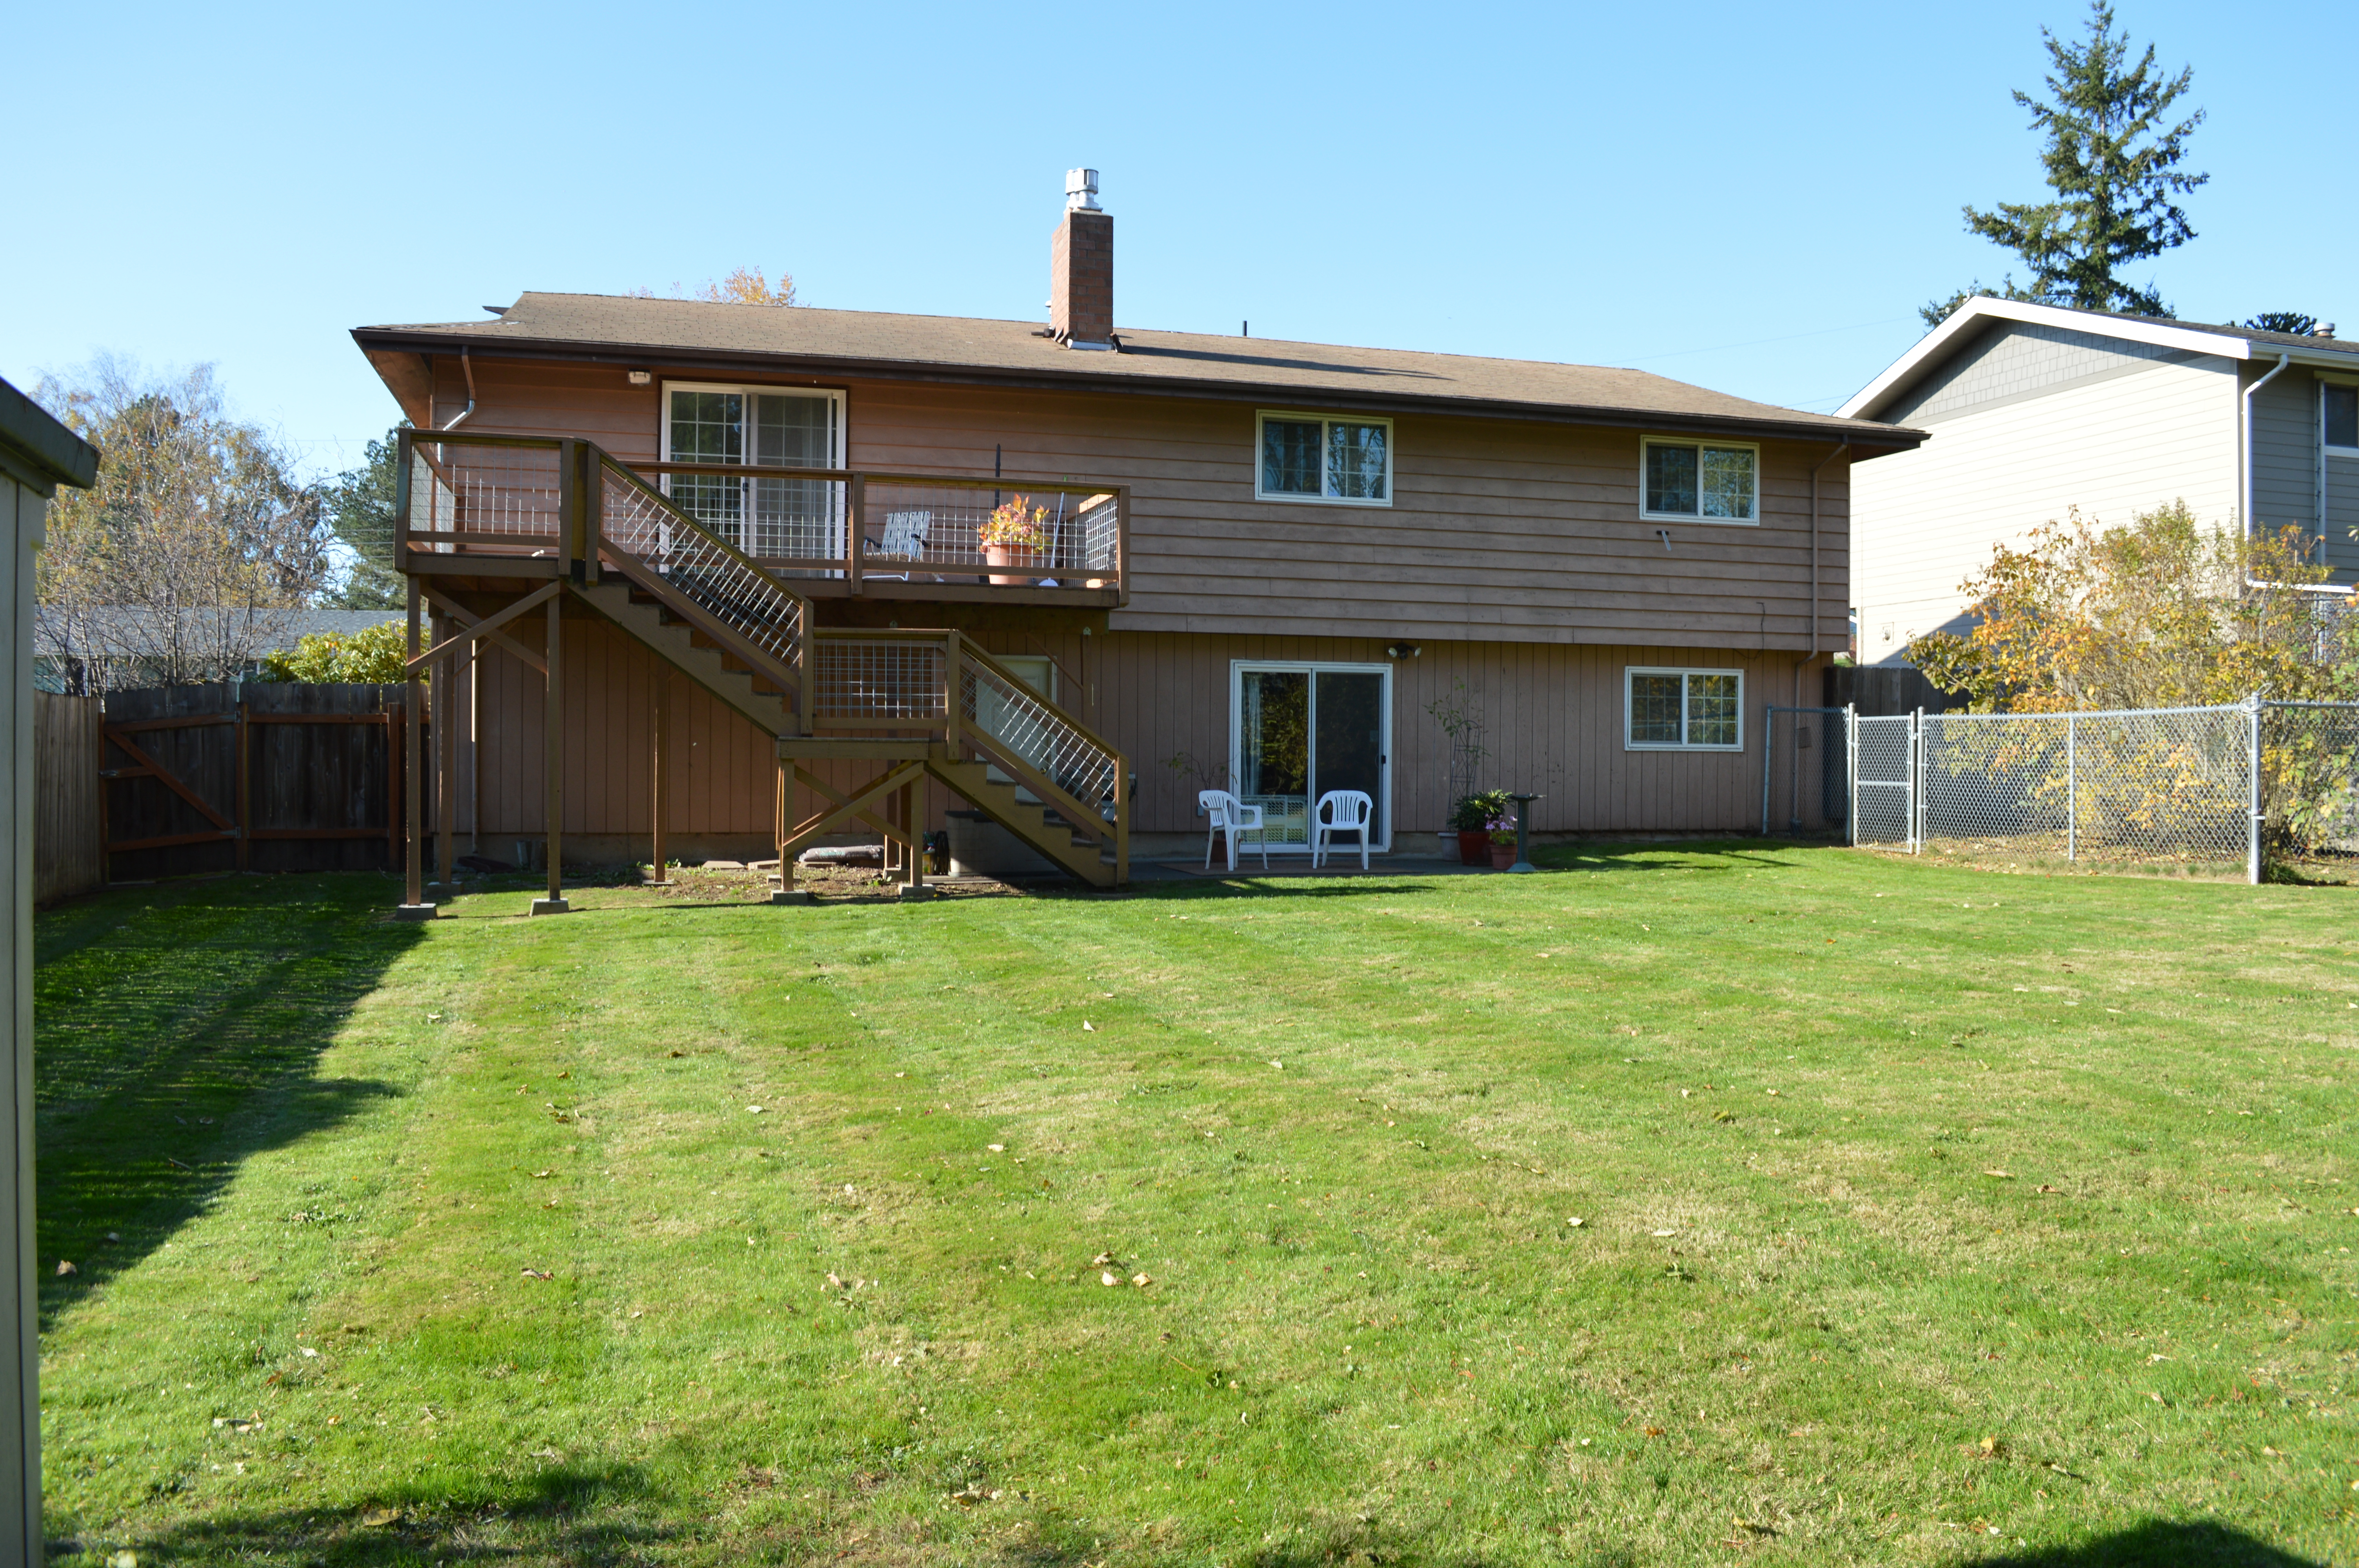 . Ferndale WA 4 bedroom  2 bath home with A C for sale